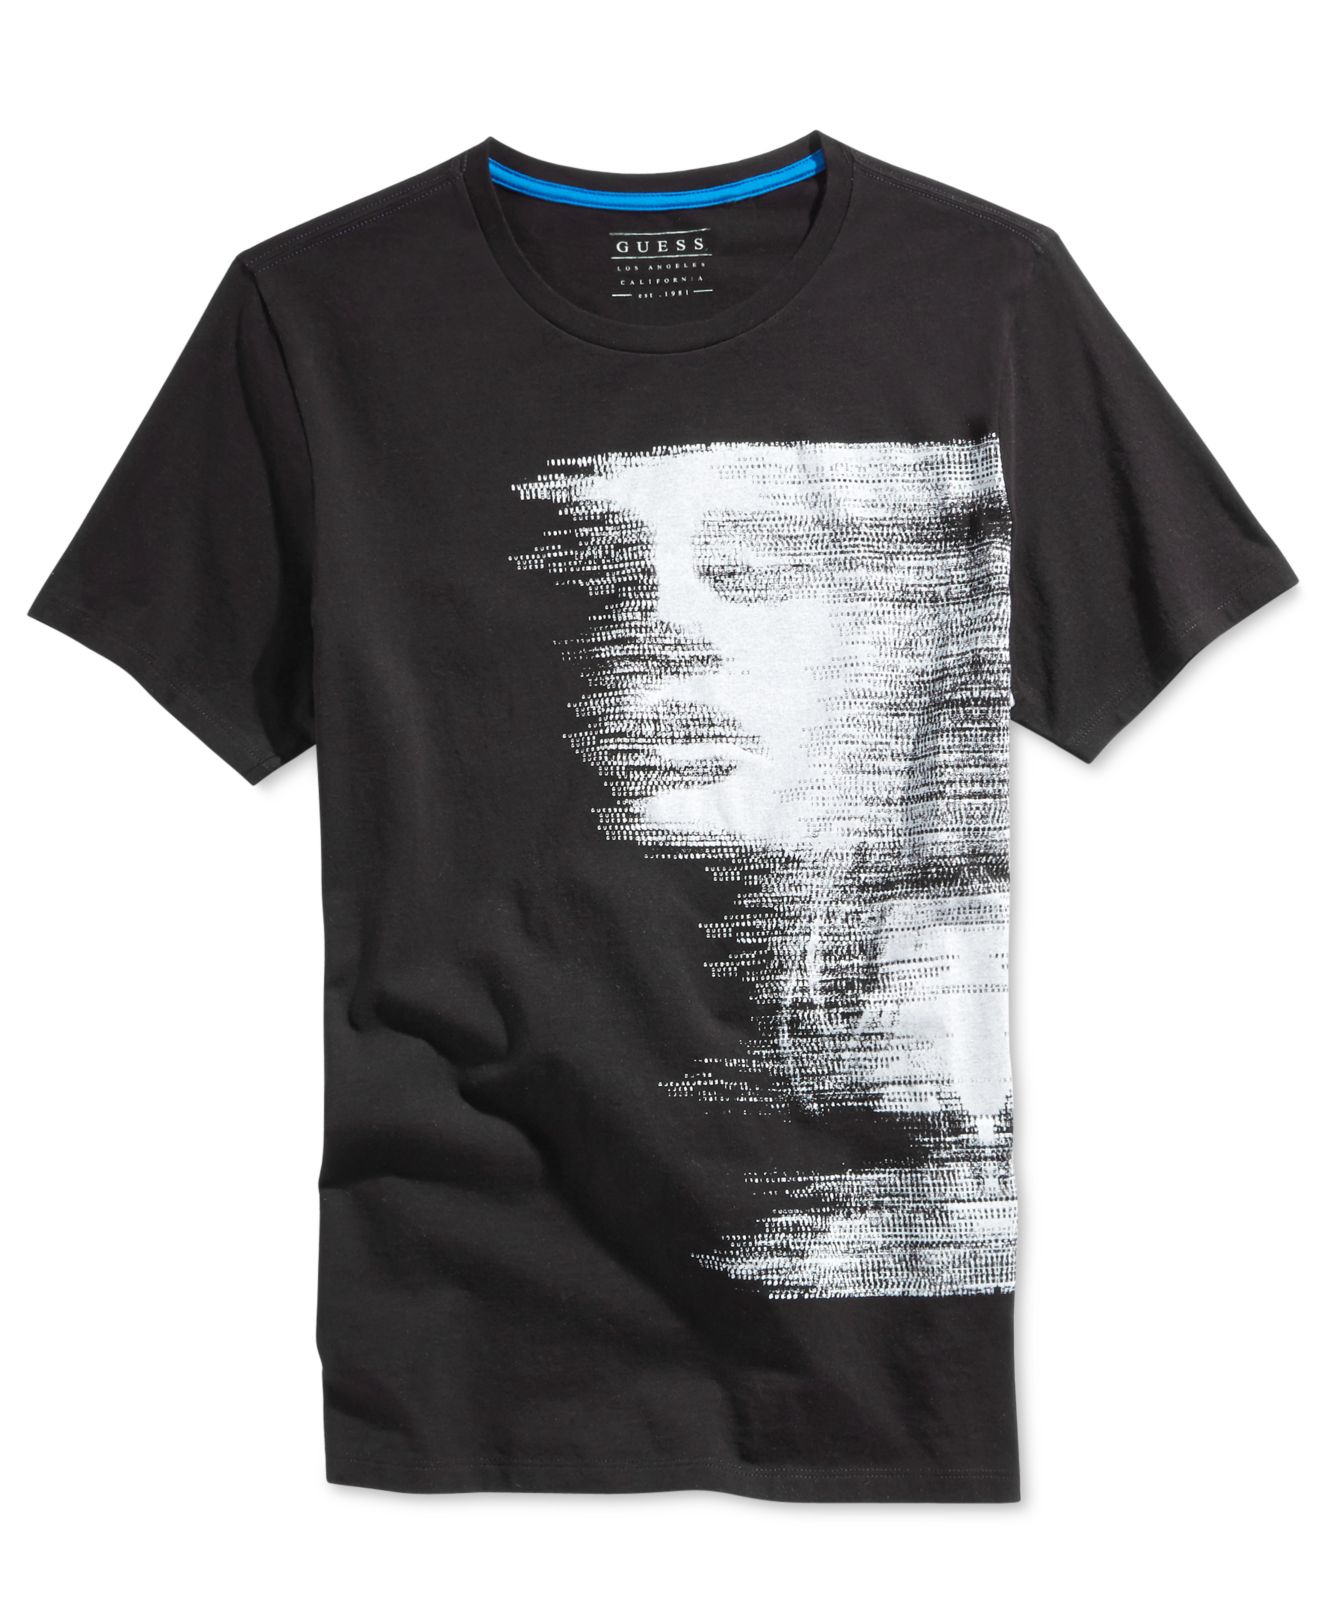 Lyst Guess Mens Subliminal Graphic Print T Shirt In Black For Men